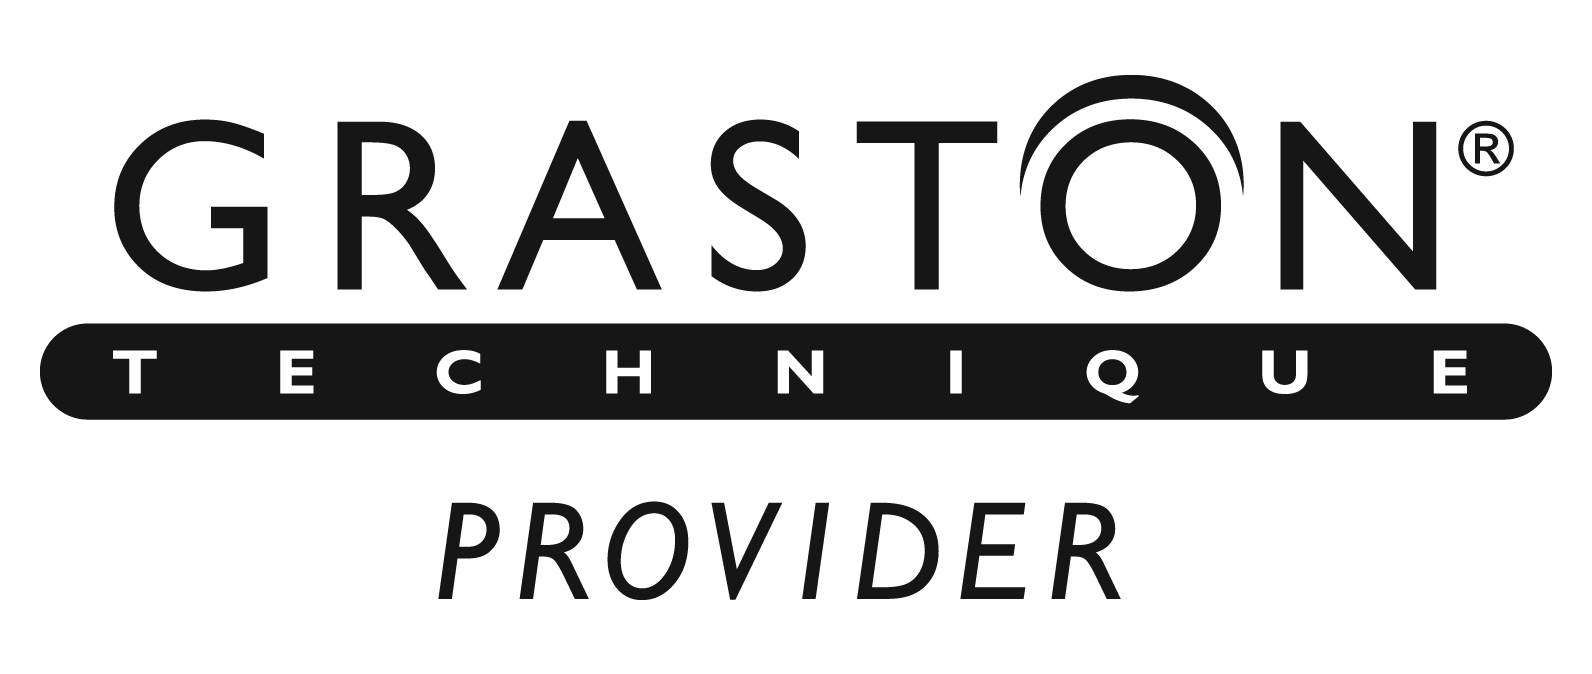 Graston Technique